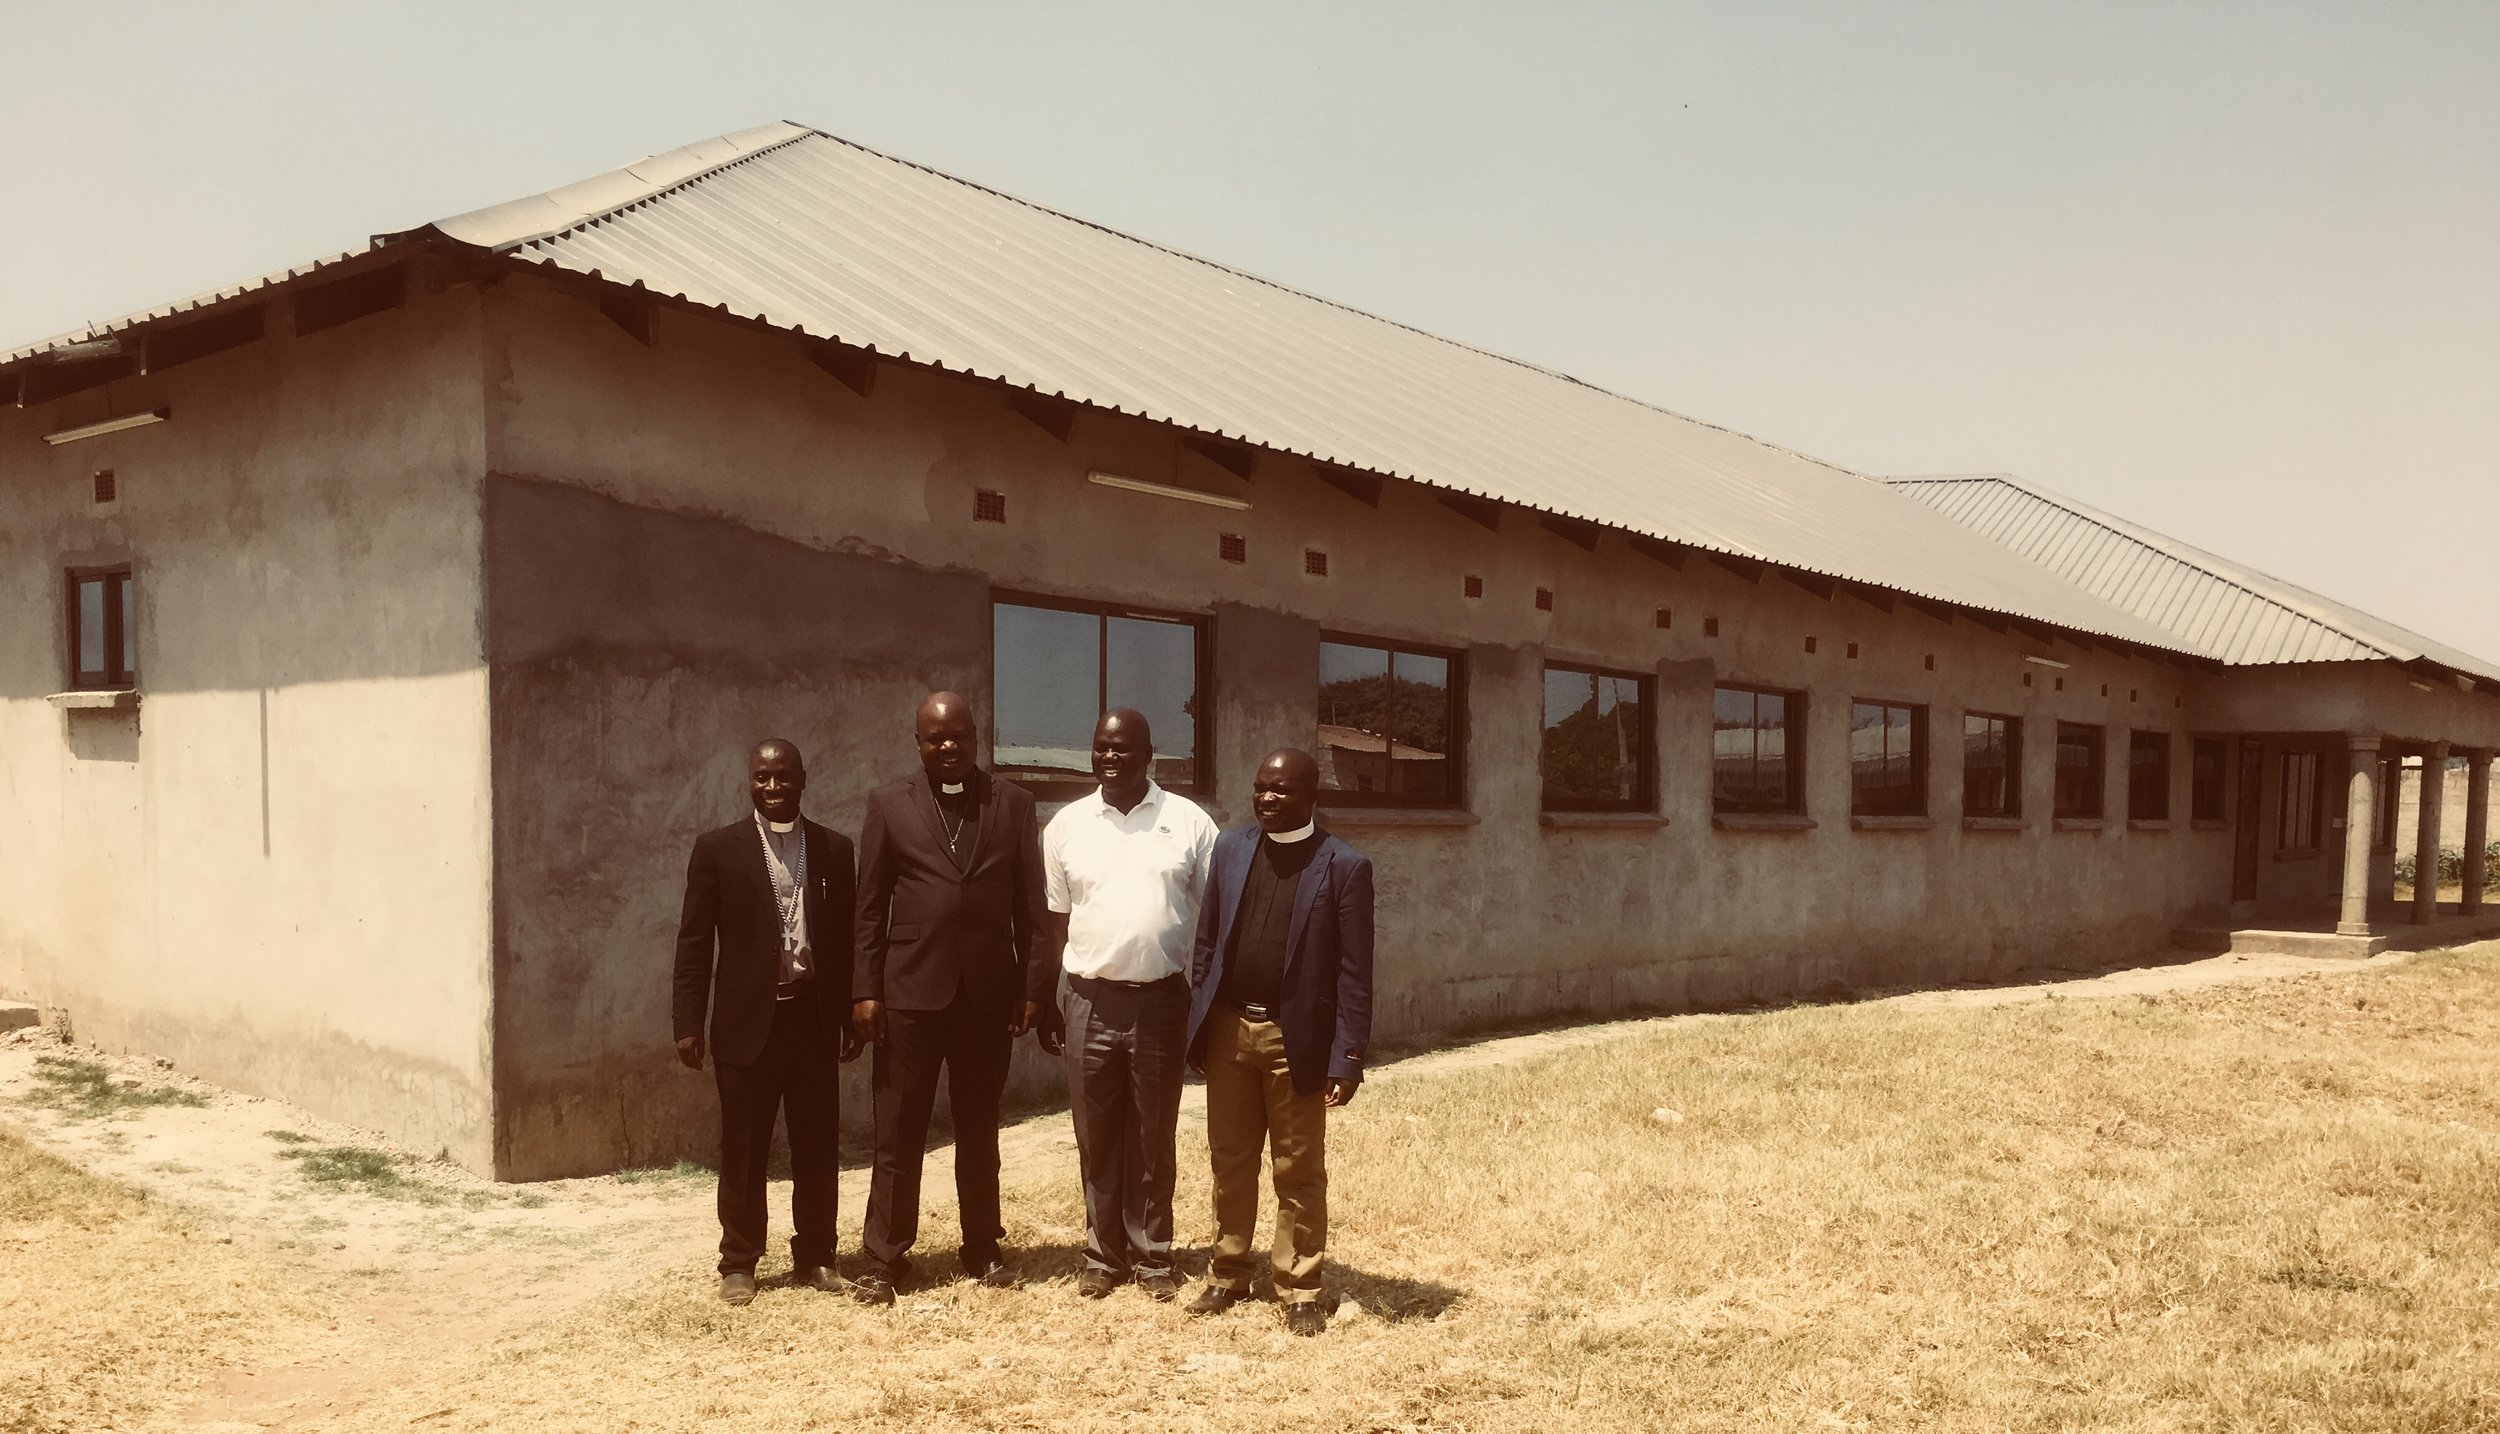 These are the CCAP Synod of Zambia leaders in front of their new (almost finished) office building. From left to right: Rev. Sevatt Kabaghe (General Secretary), Rev. Friday Kabakasa (Moderator-elect), Rev. Dr. Daniel Tembo ( Deputy General Secretary), Rev. Chisazon Chanda (Moderator).